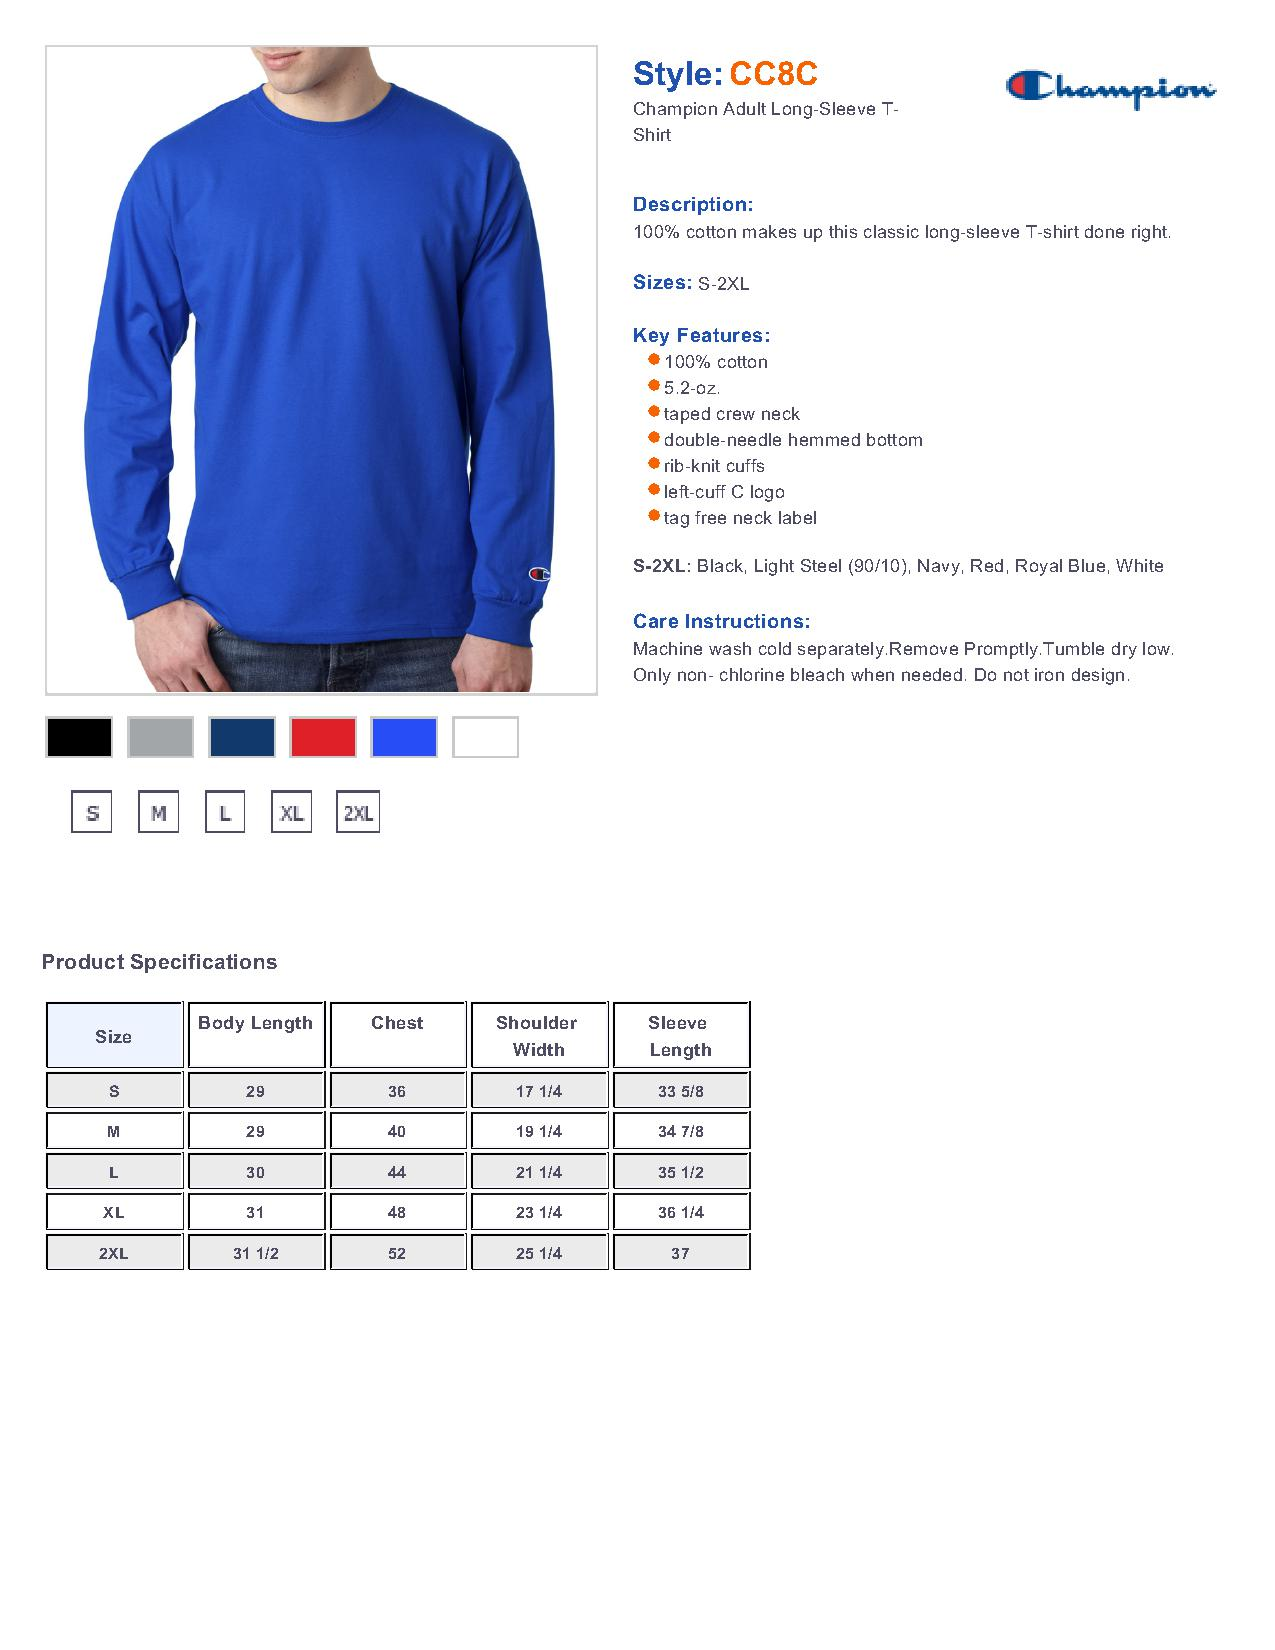 baa9476b Champion CC8C Long-Sleeve Tagless T-Shirt $7.78 - Men's T-Shirts